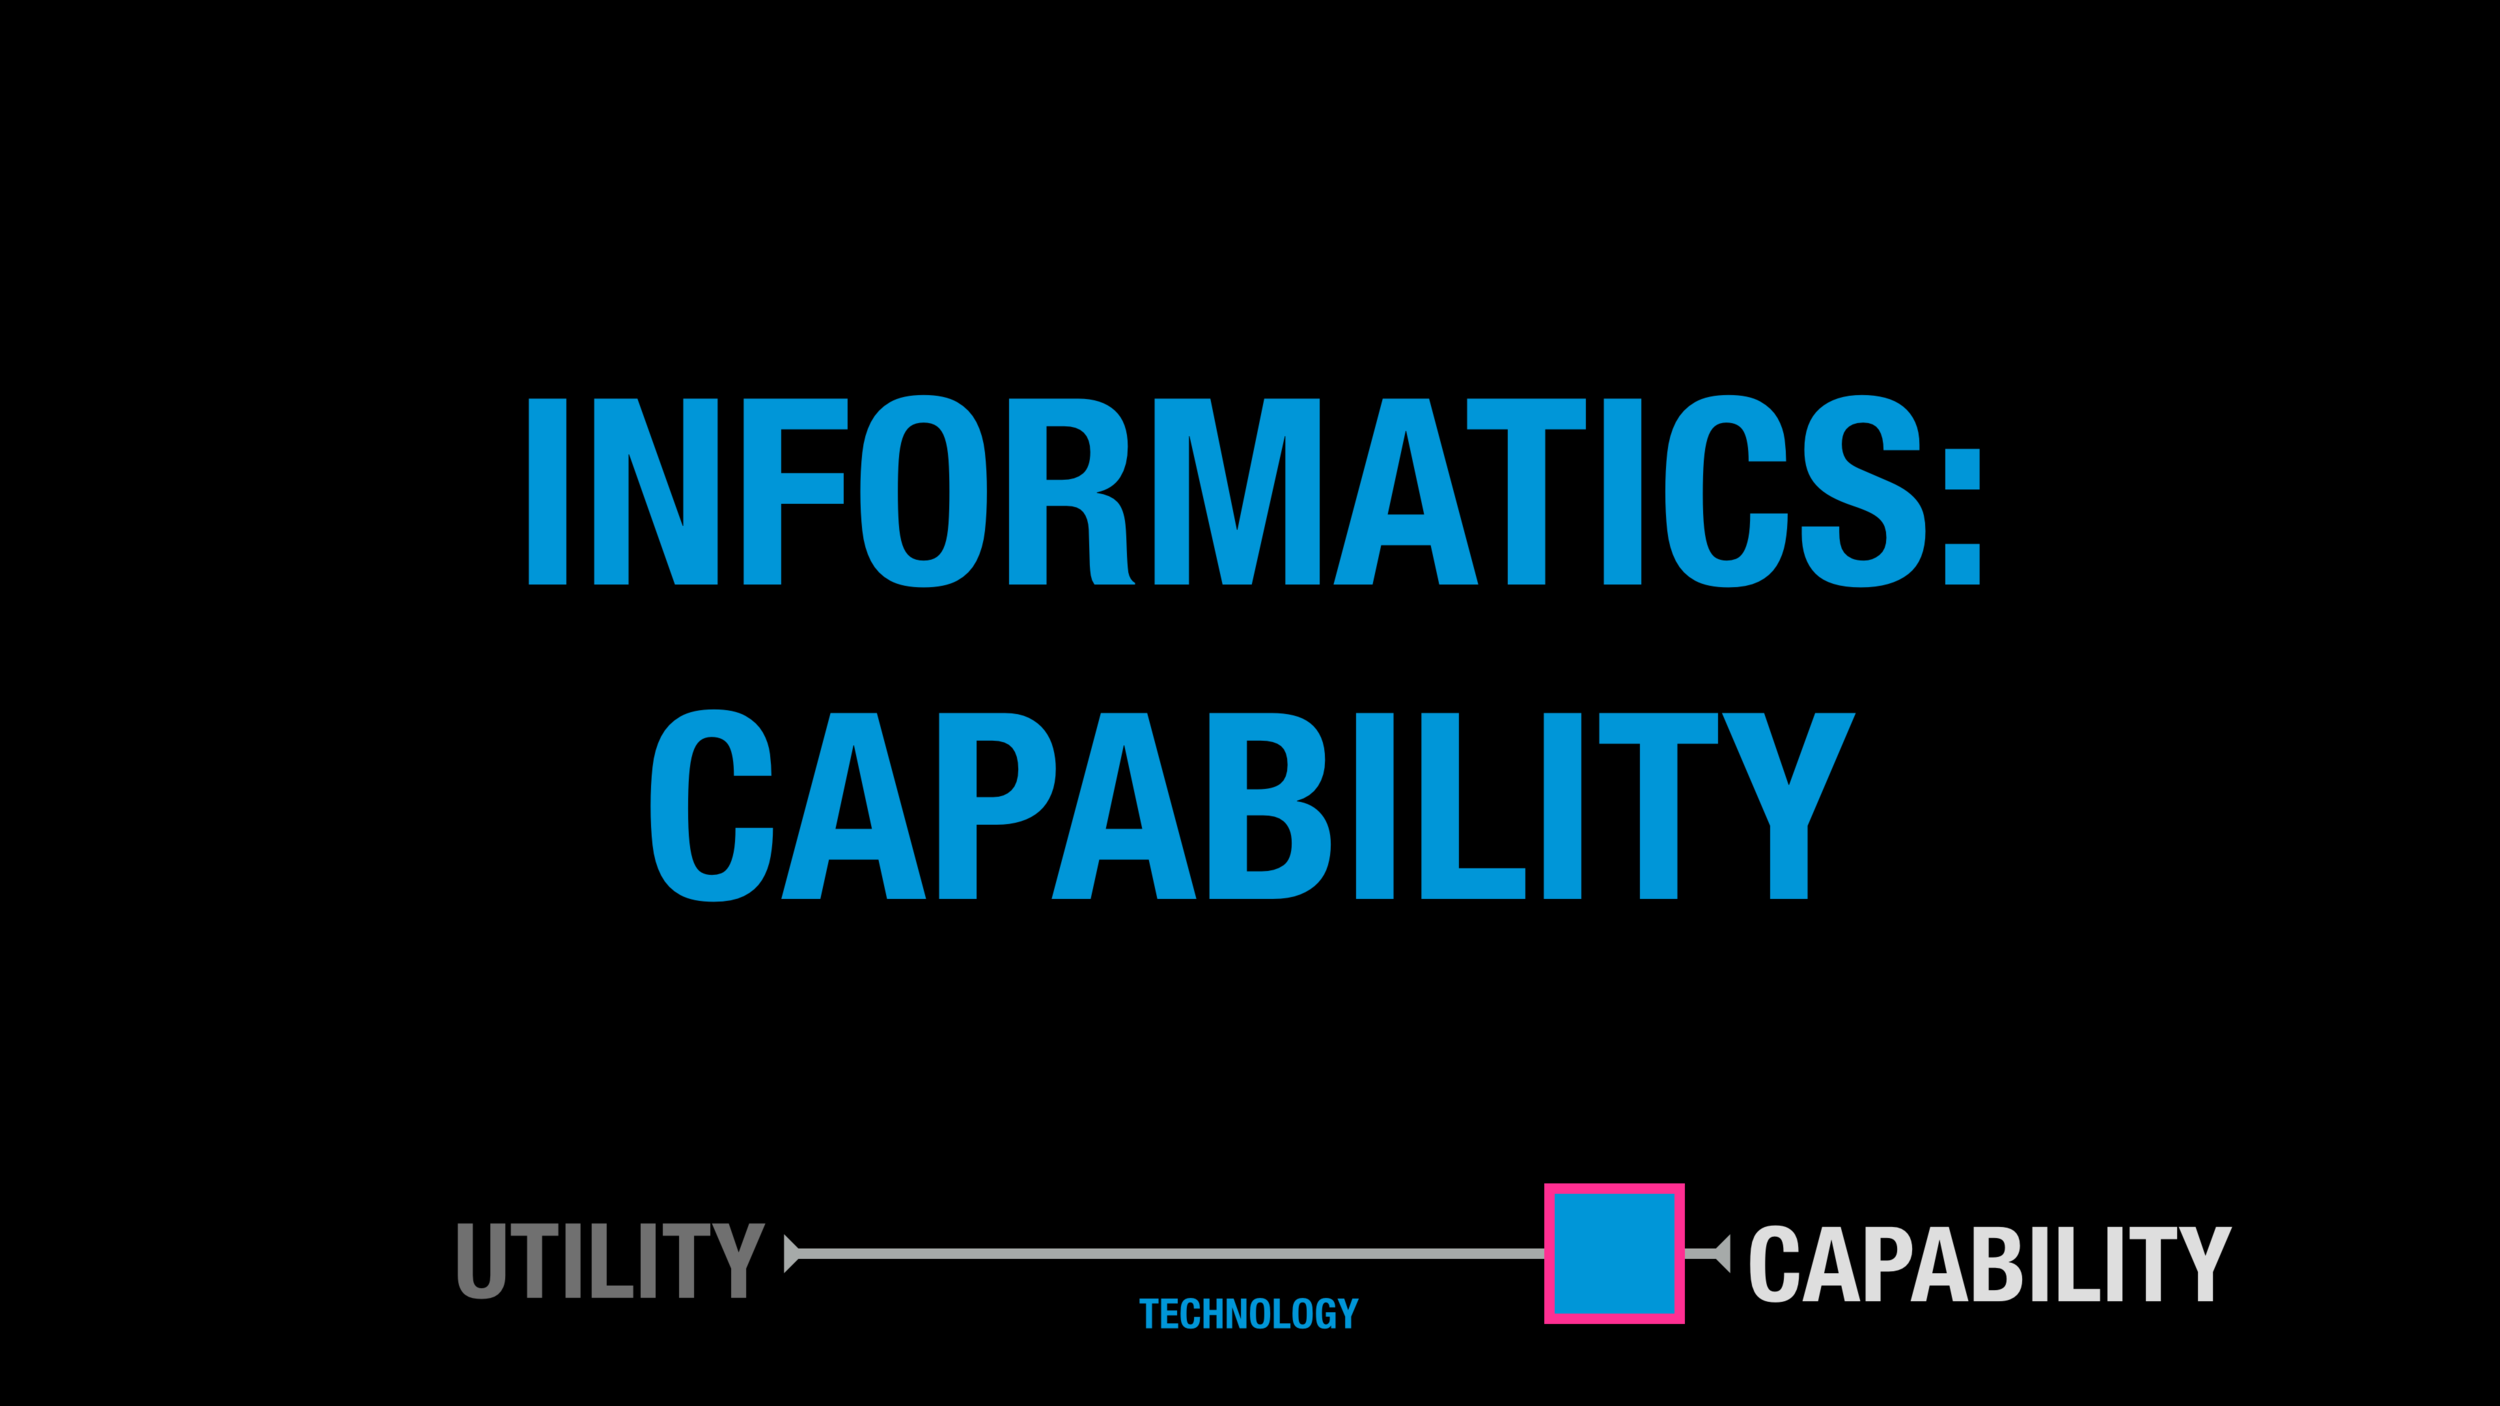 Now, organizations must gain ability in informatics: the strategic capability to capture data and organize it into meaningful information, through a spectrum of technology tools everyone in a digital business environment needs to be aware of.